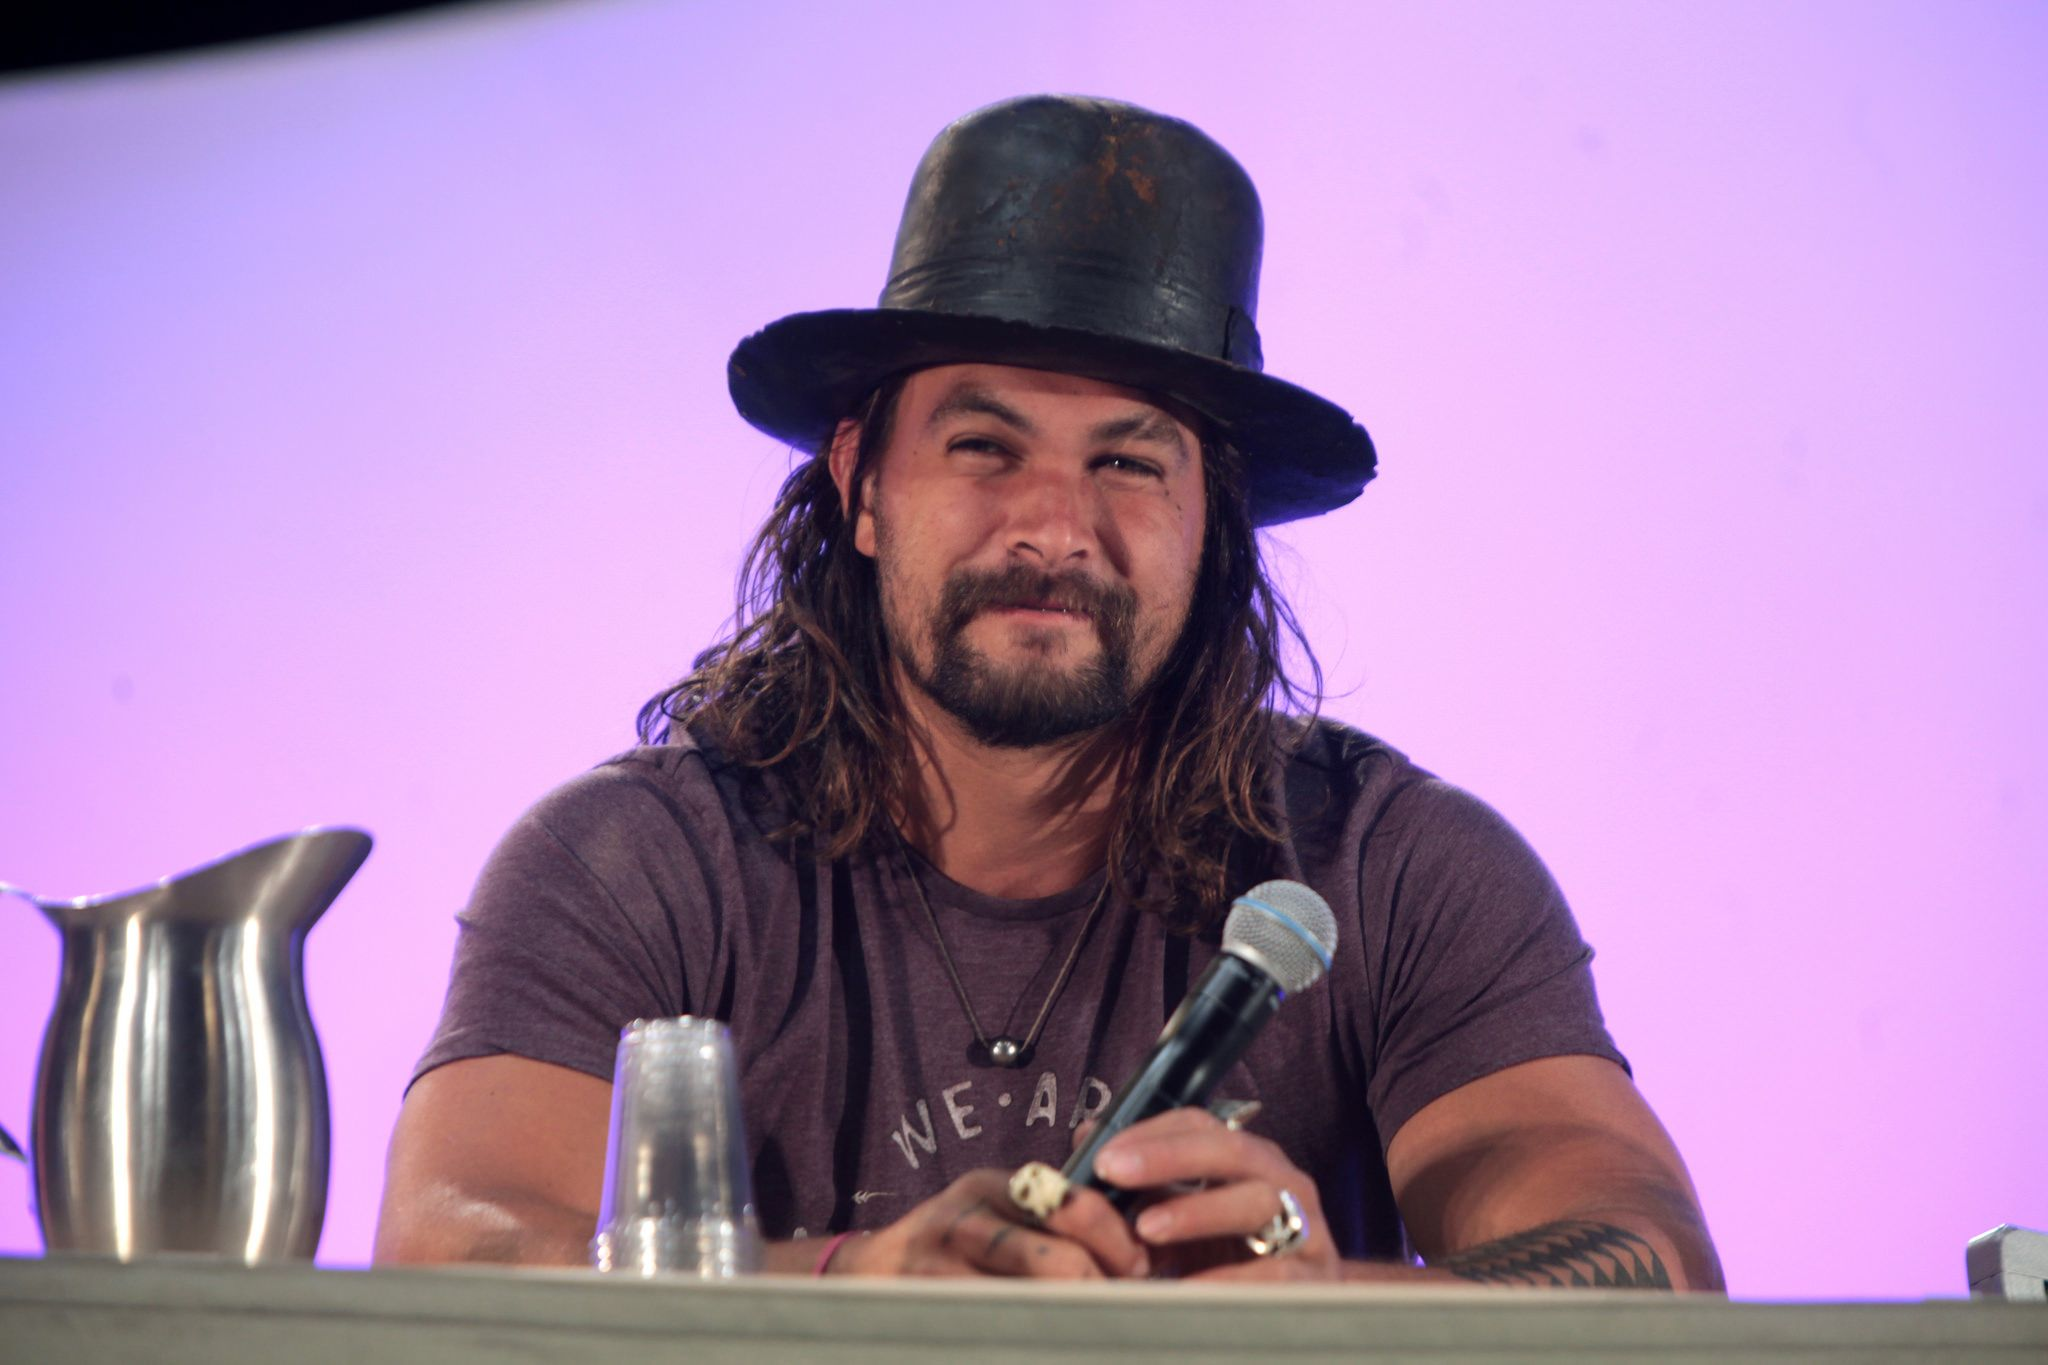 Justice League Updates New Image of Jason Momoa as